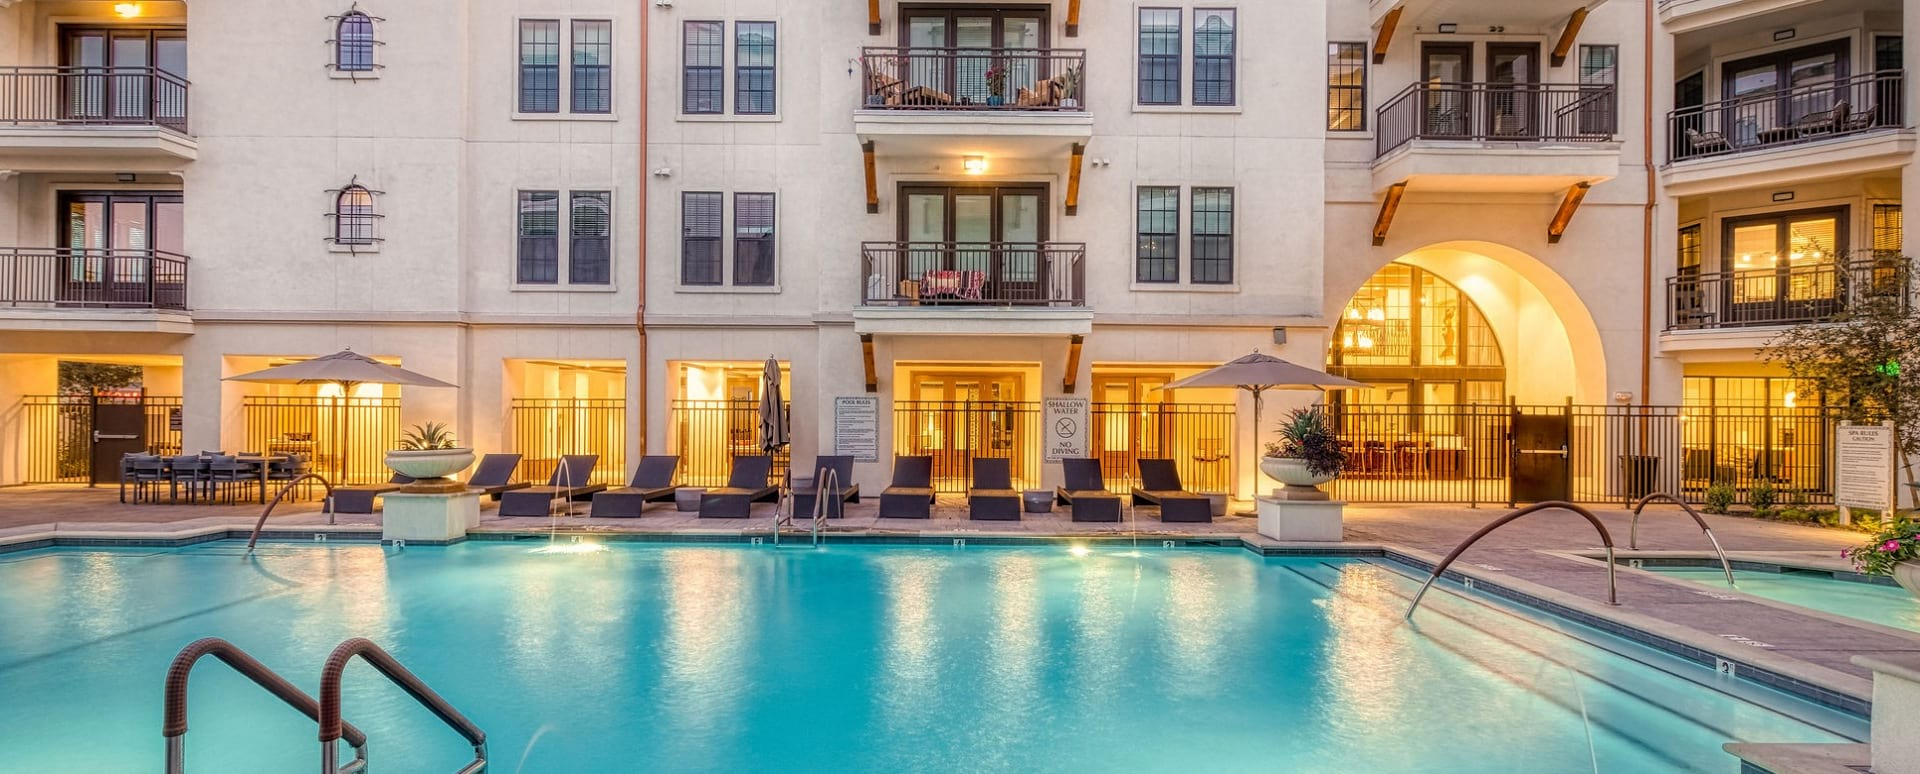 Our Biltmore apartment pool with spa